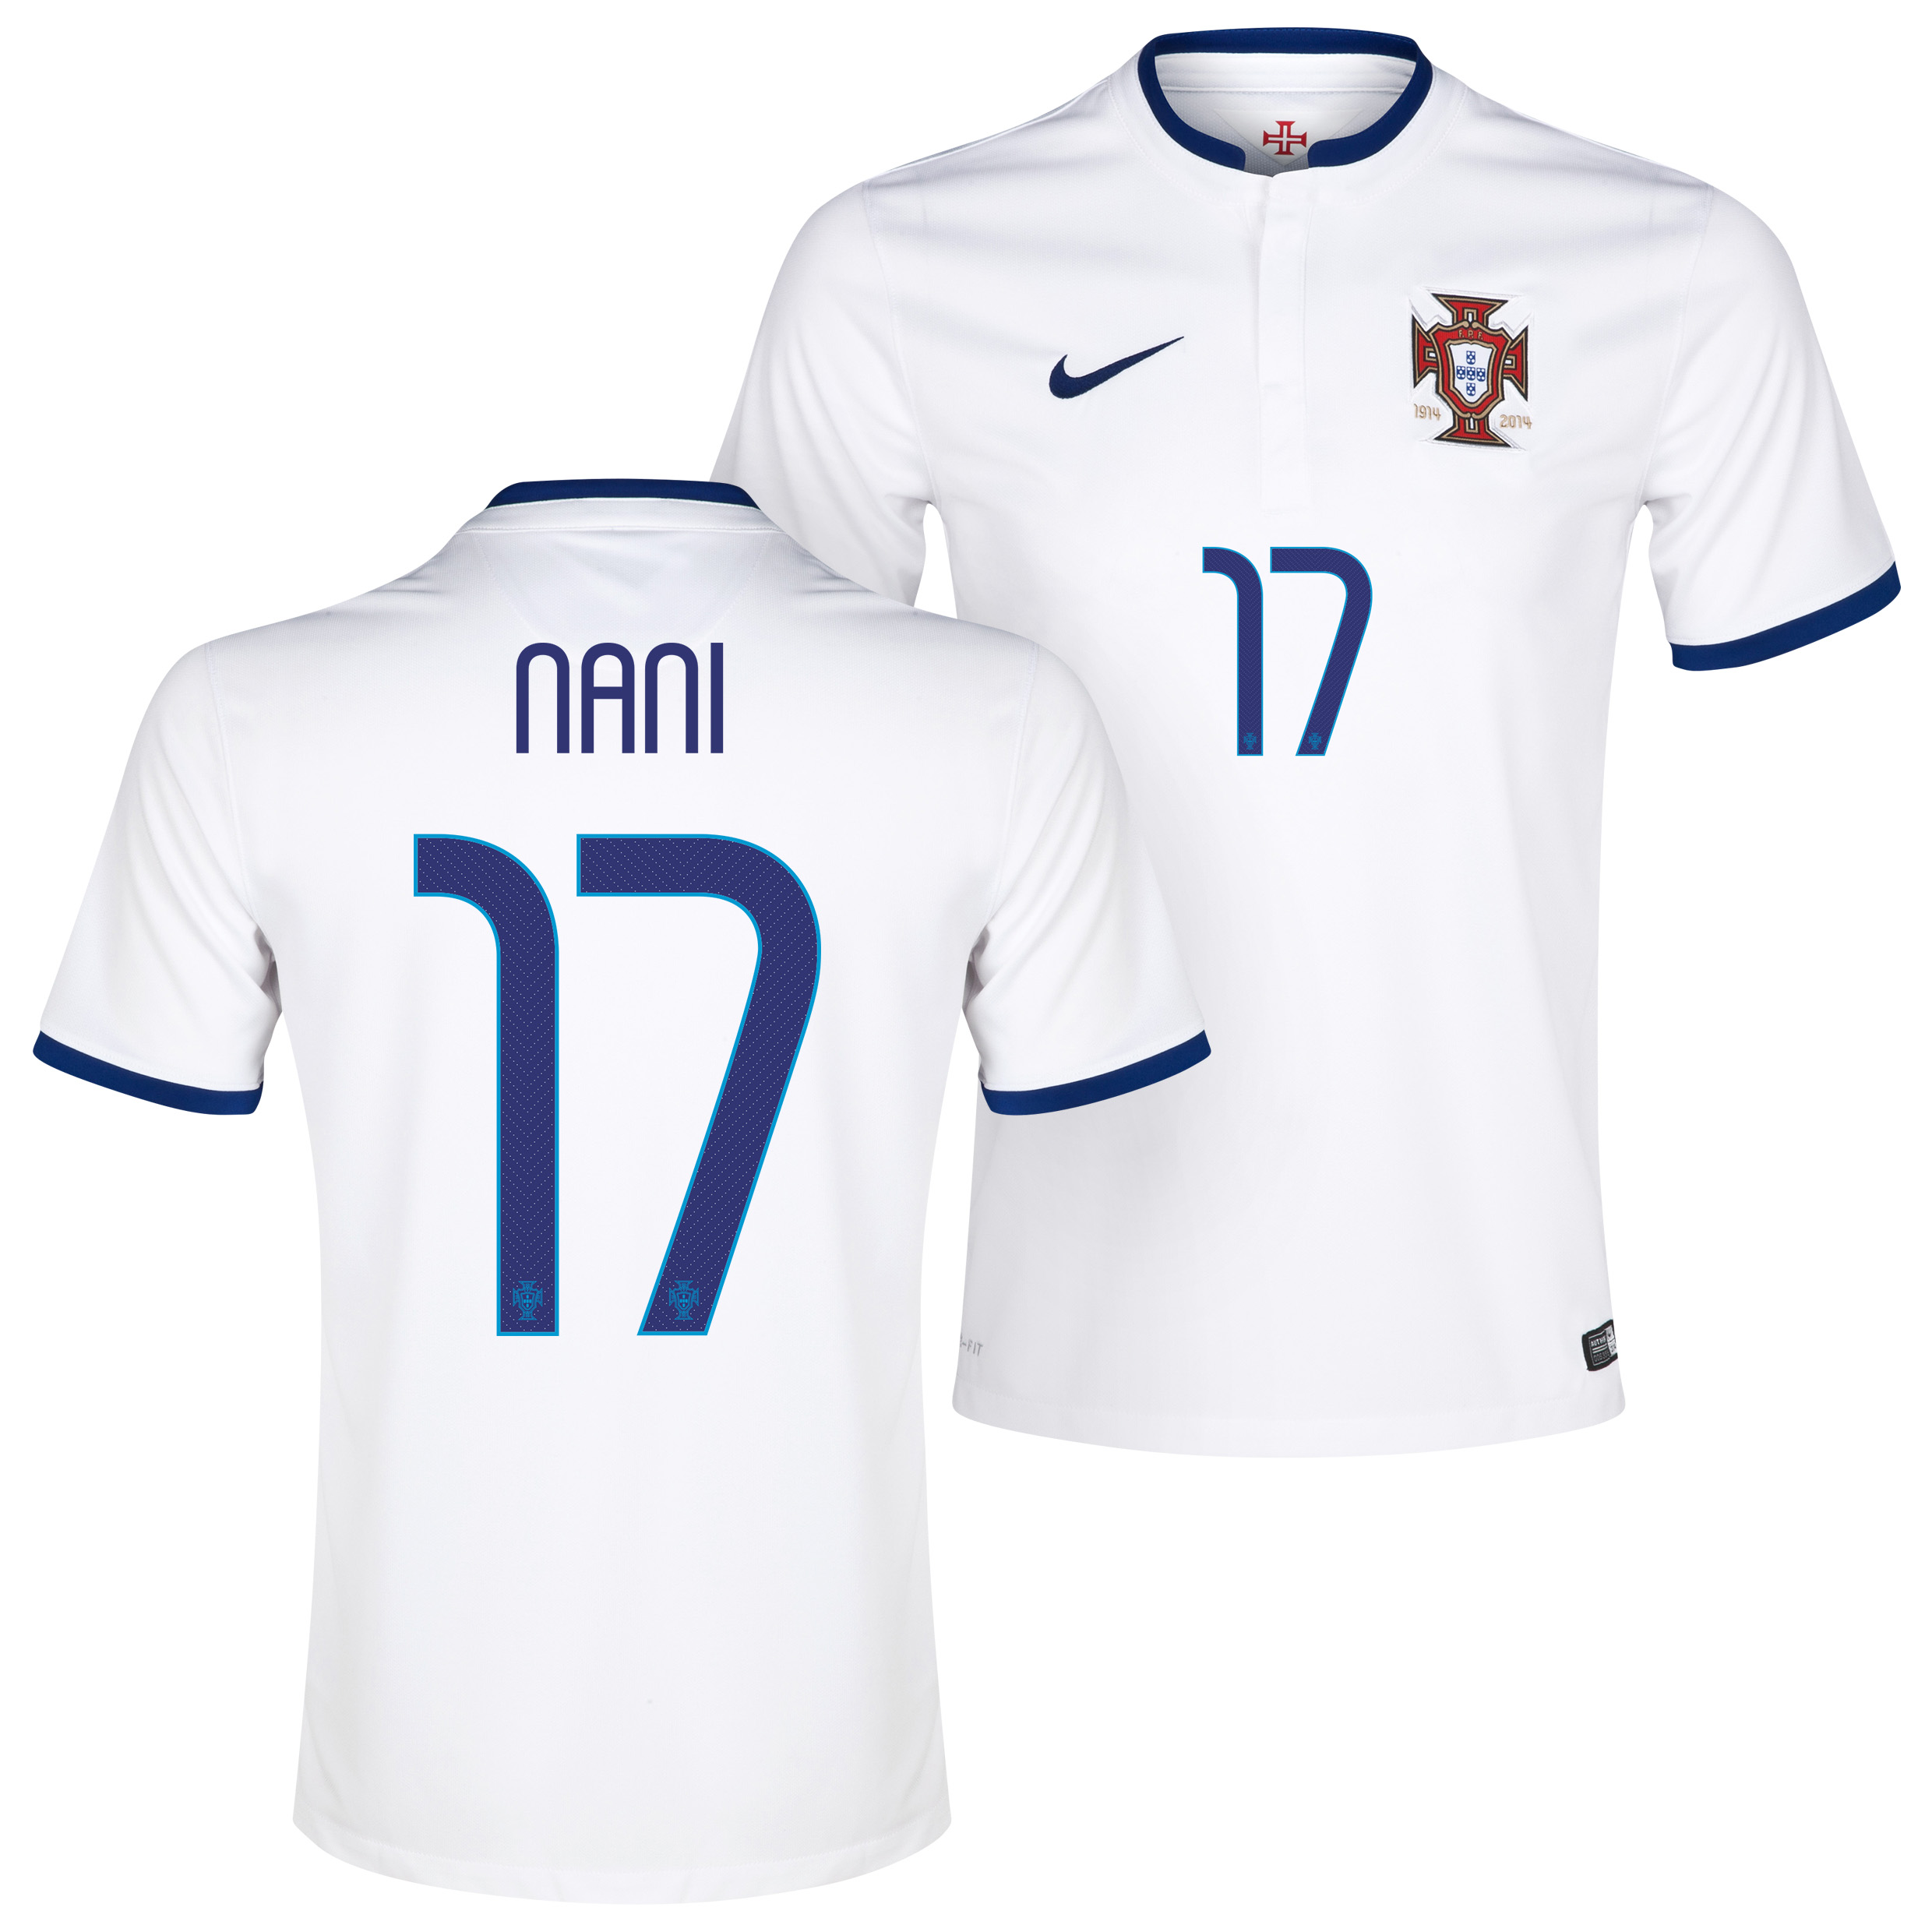 Portugal Away Shirt 2014/15 - Kids White with Nani 17 printing